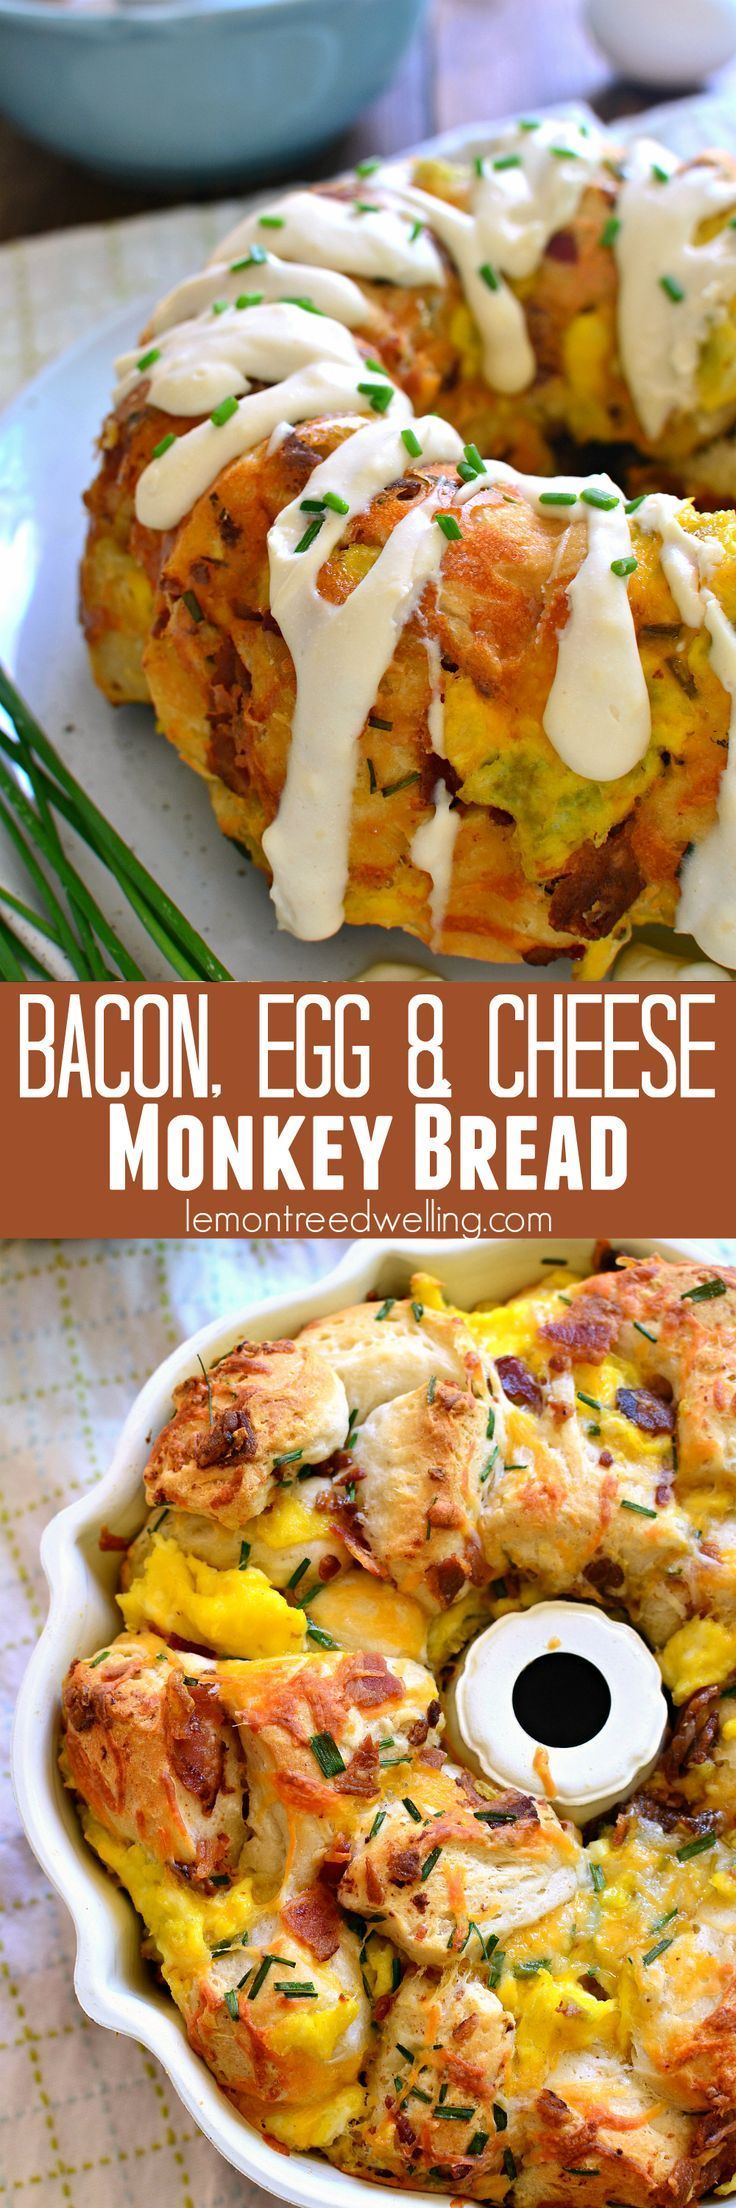 This Bacon, Egg & Cheese Monkey Bread